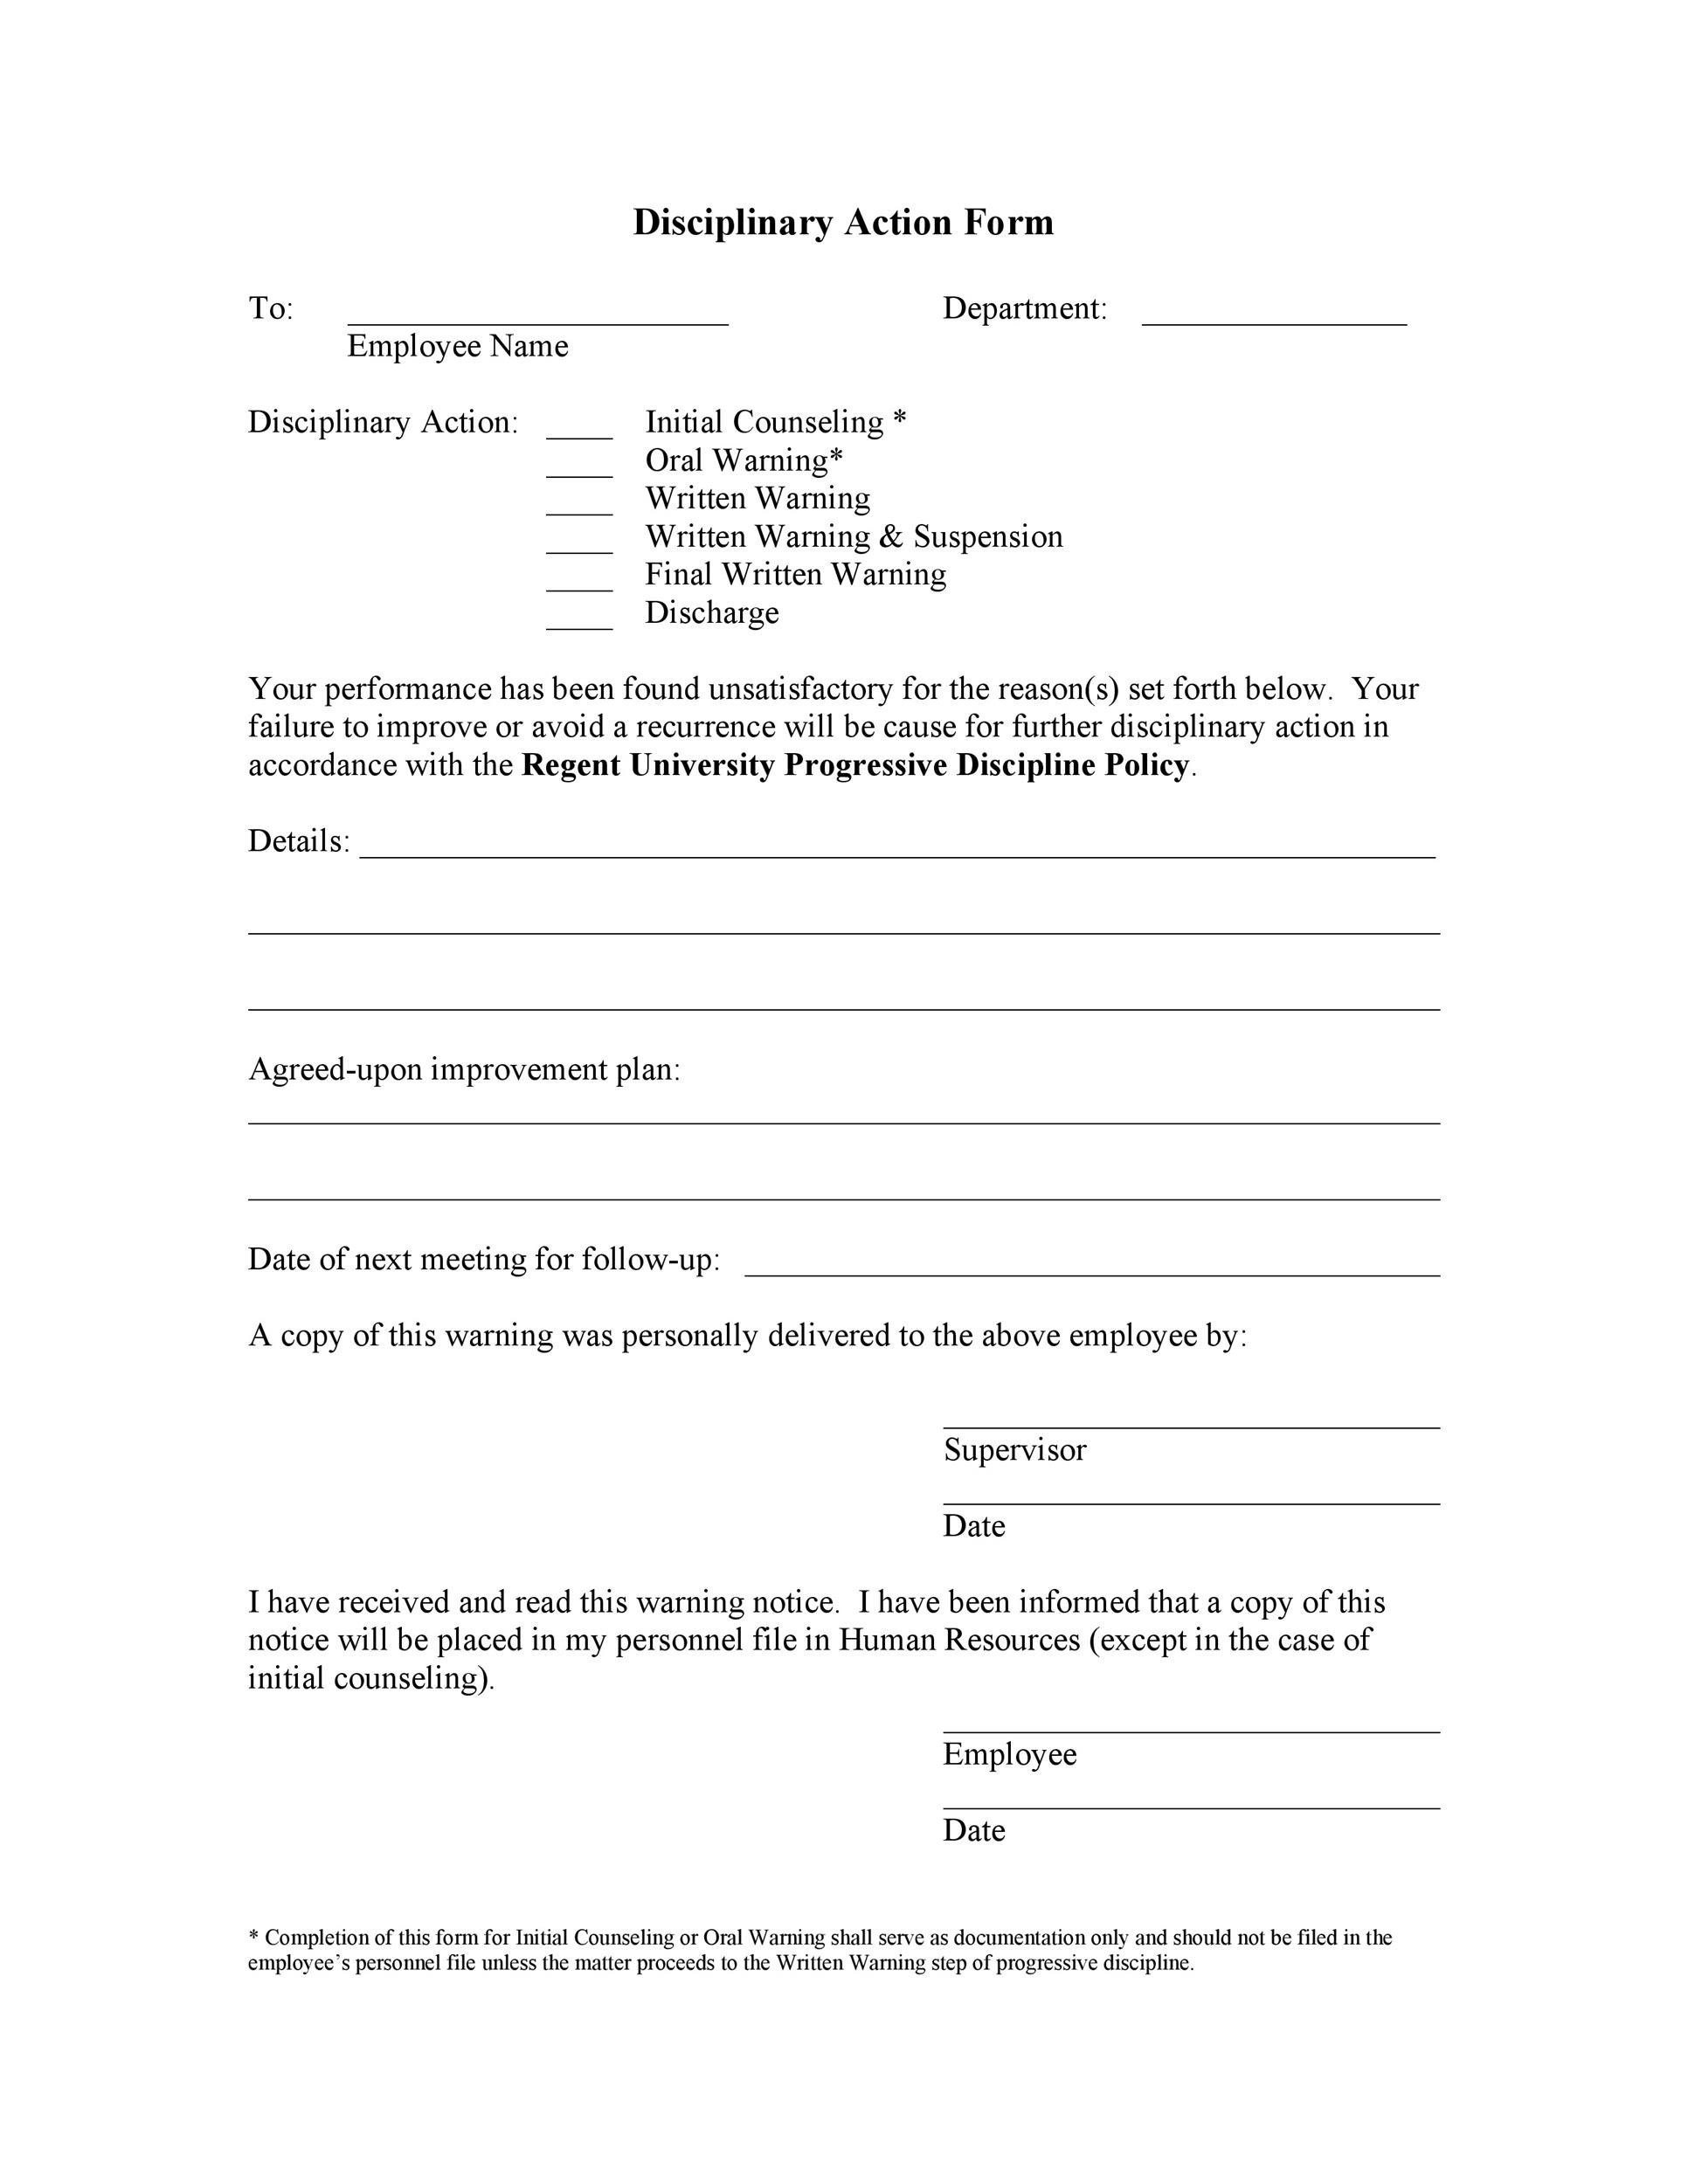 46 Effective Employee Write Up Forms Disciplinary Action Forms – Disciplinary Action Form